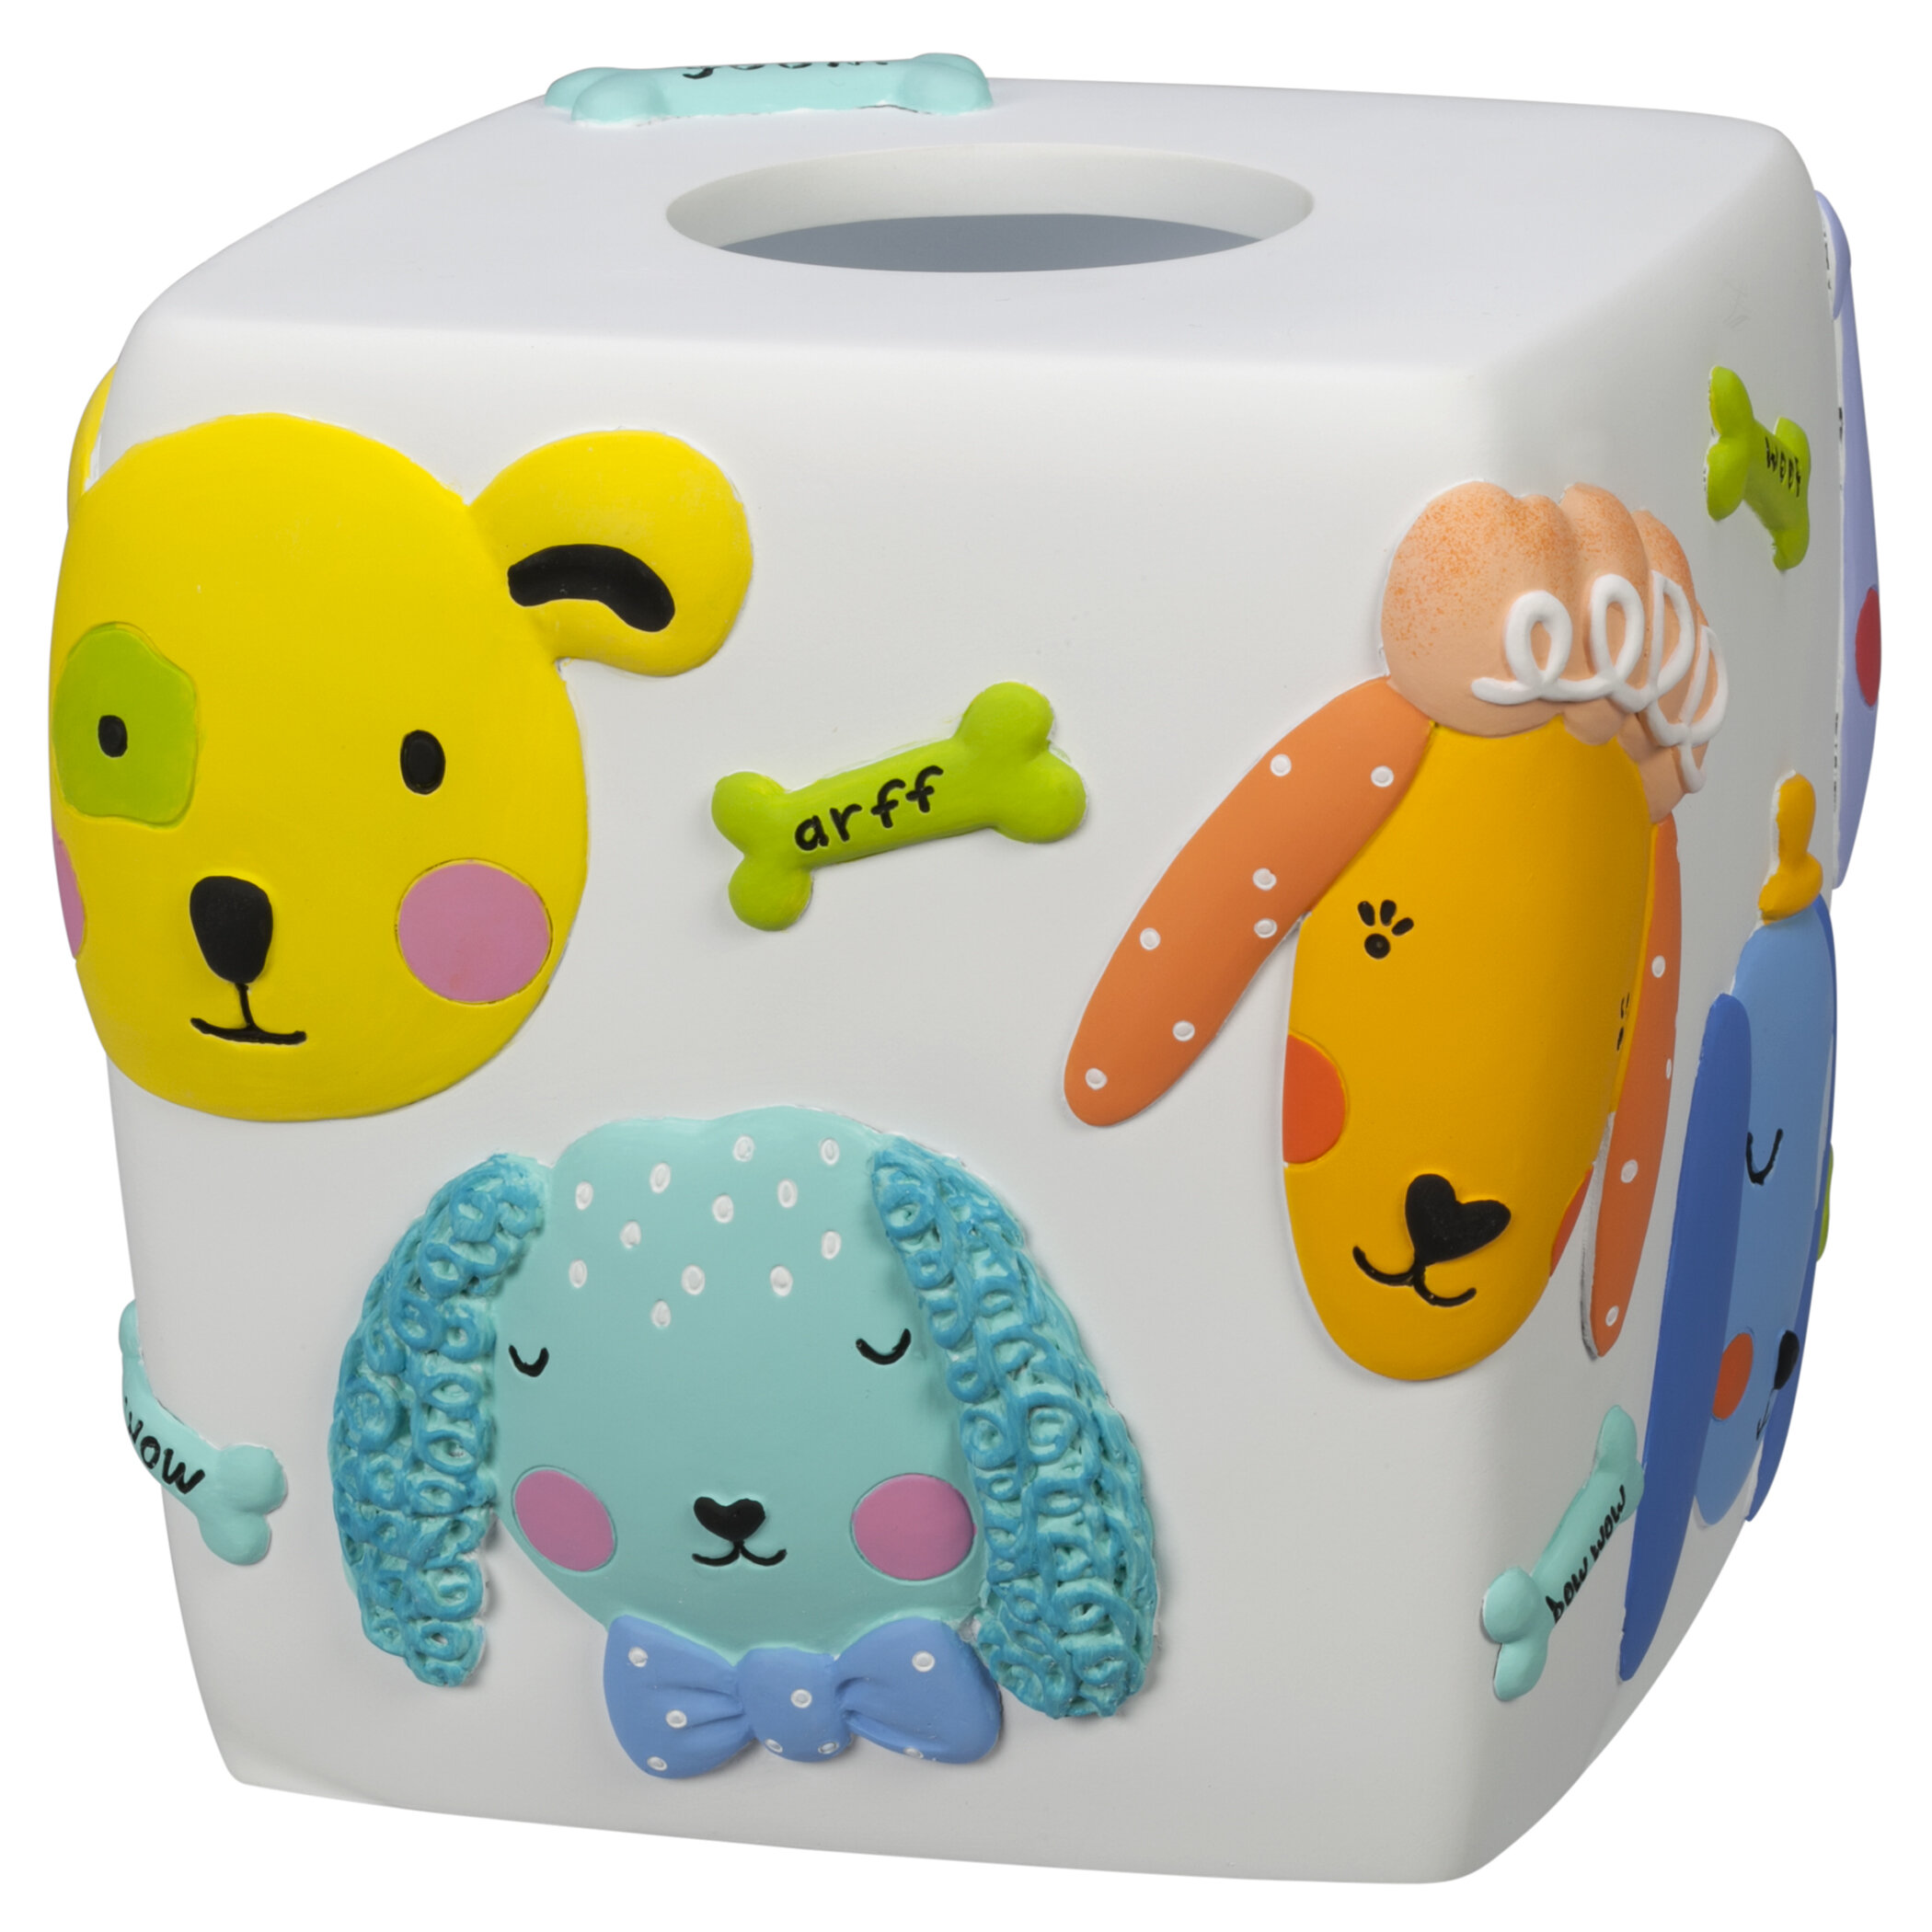 Zoomie Kids Chaney Resin Tissue Box Cover Wayfair